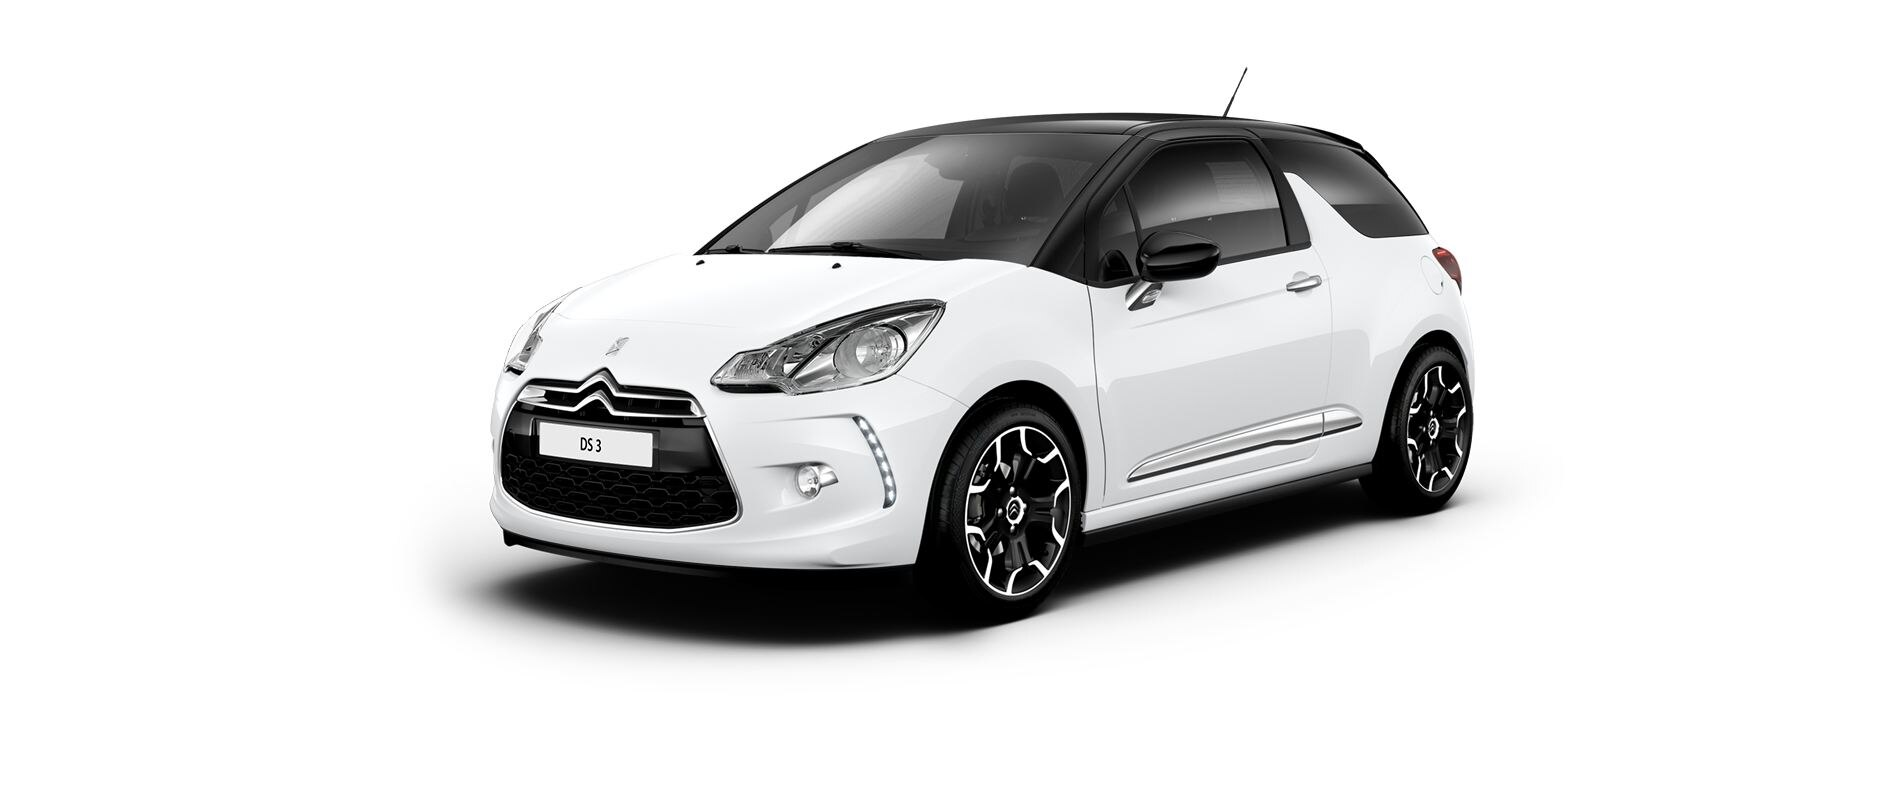 DS 3 - Blanco Blanquise techo negro